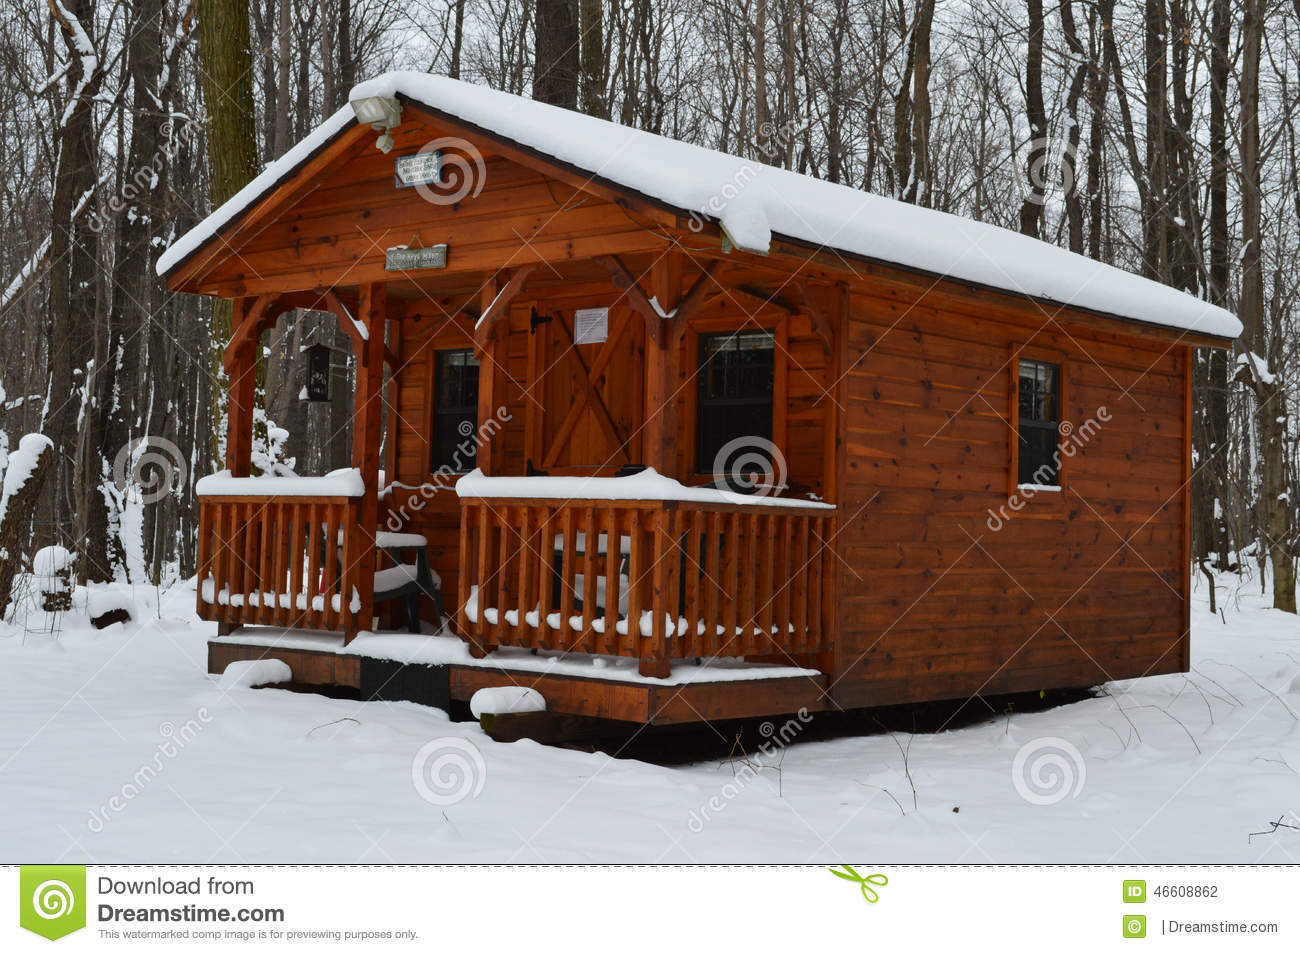 Log cabin in the woods winter - Royalty Free Stock Photo